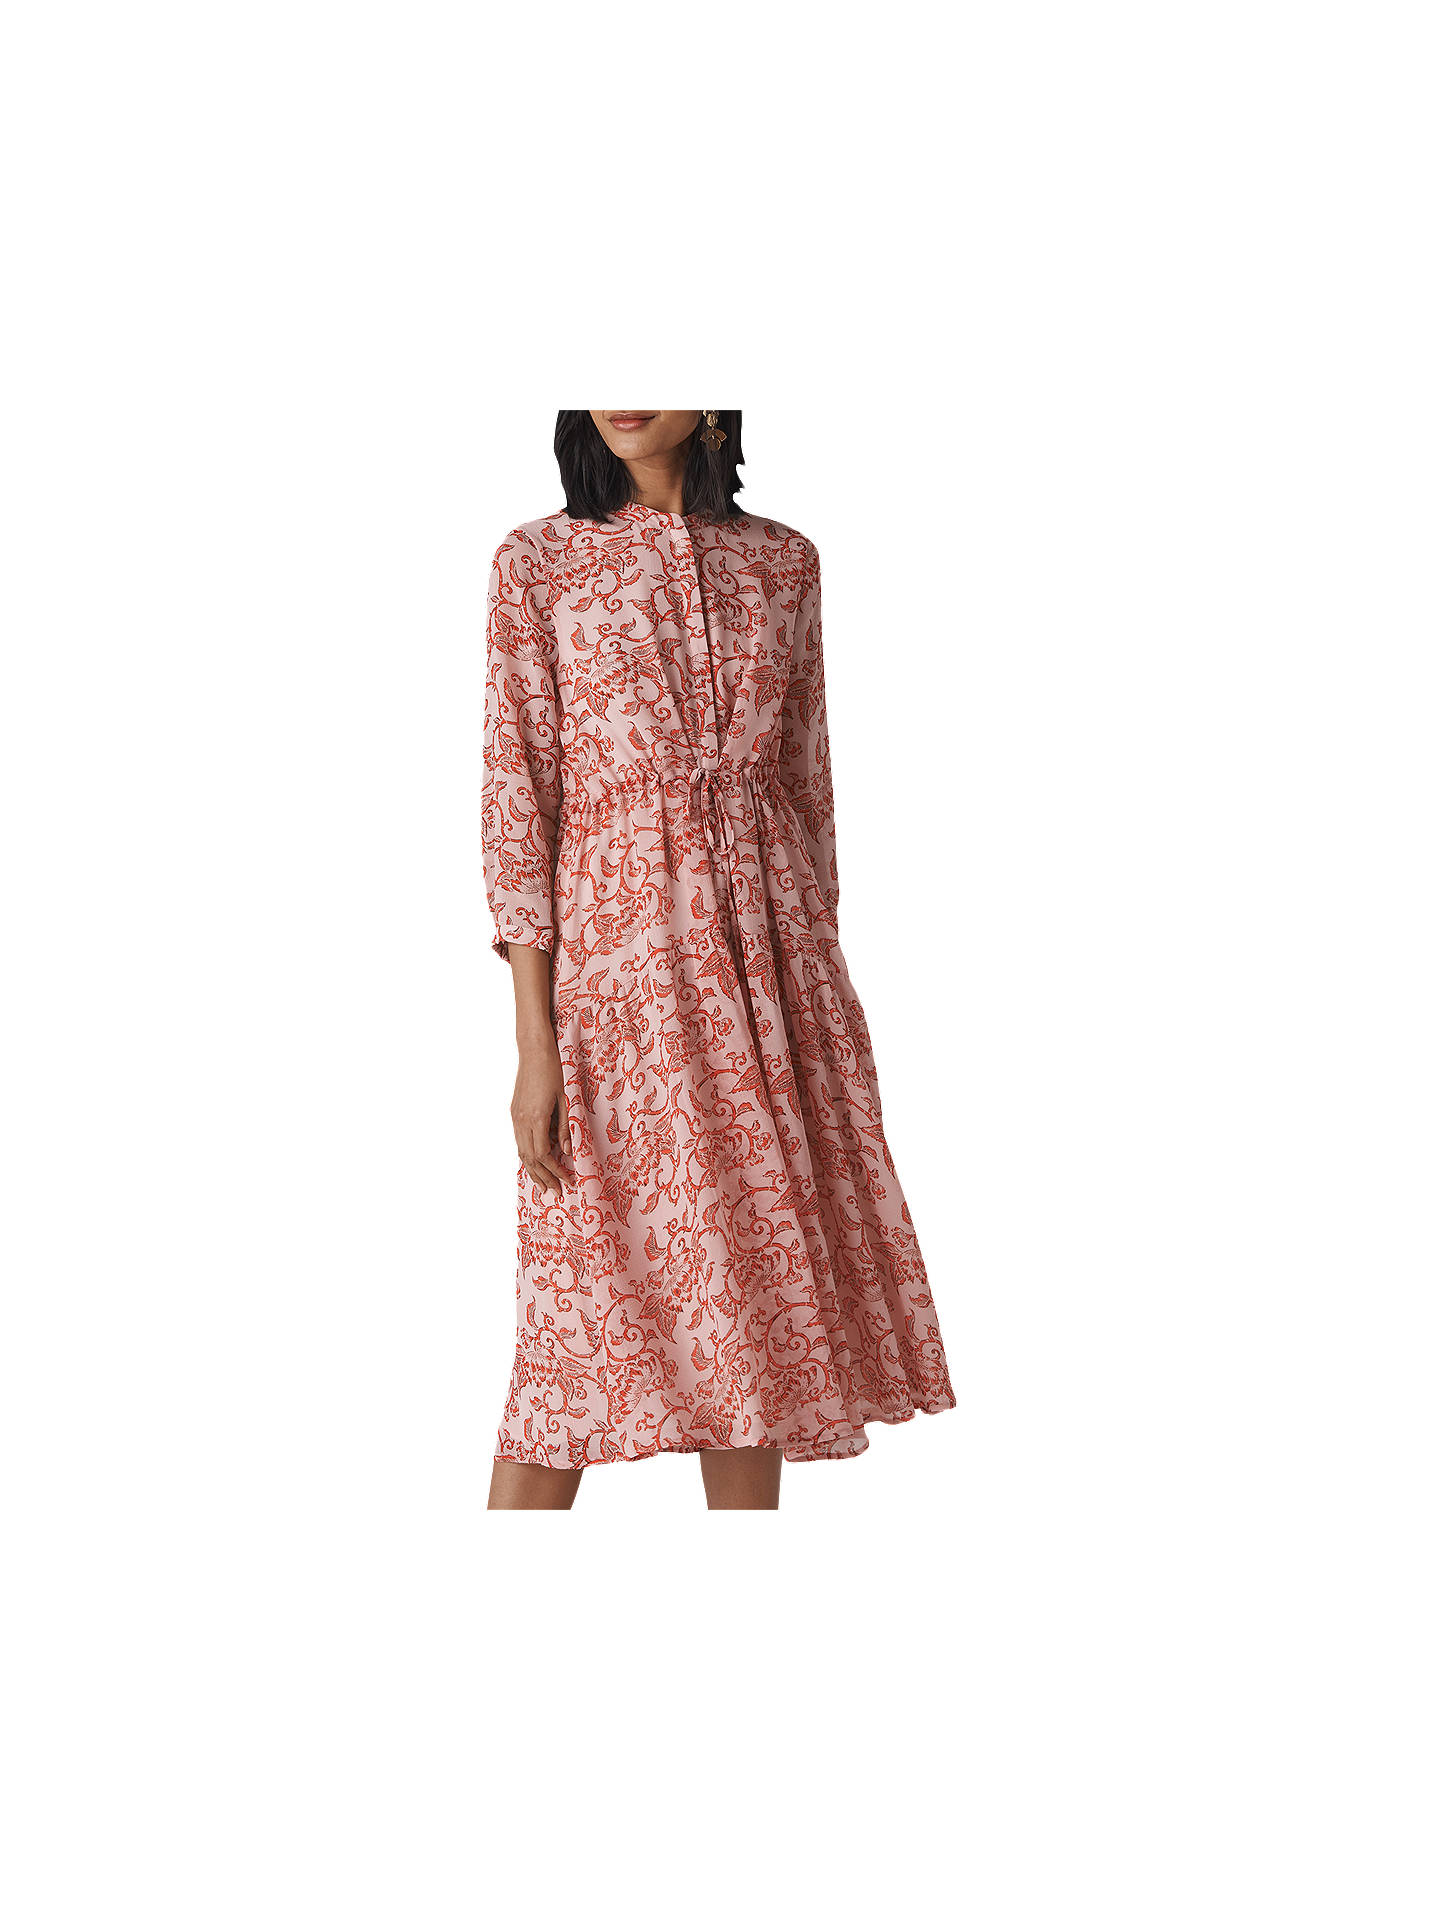 Whistles Bali Print Midi Shirt Dress Pinkmulti At John Lewis